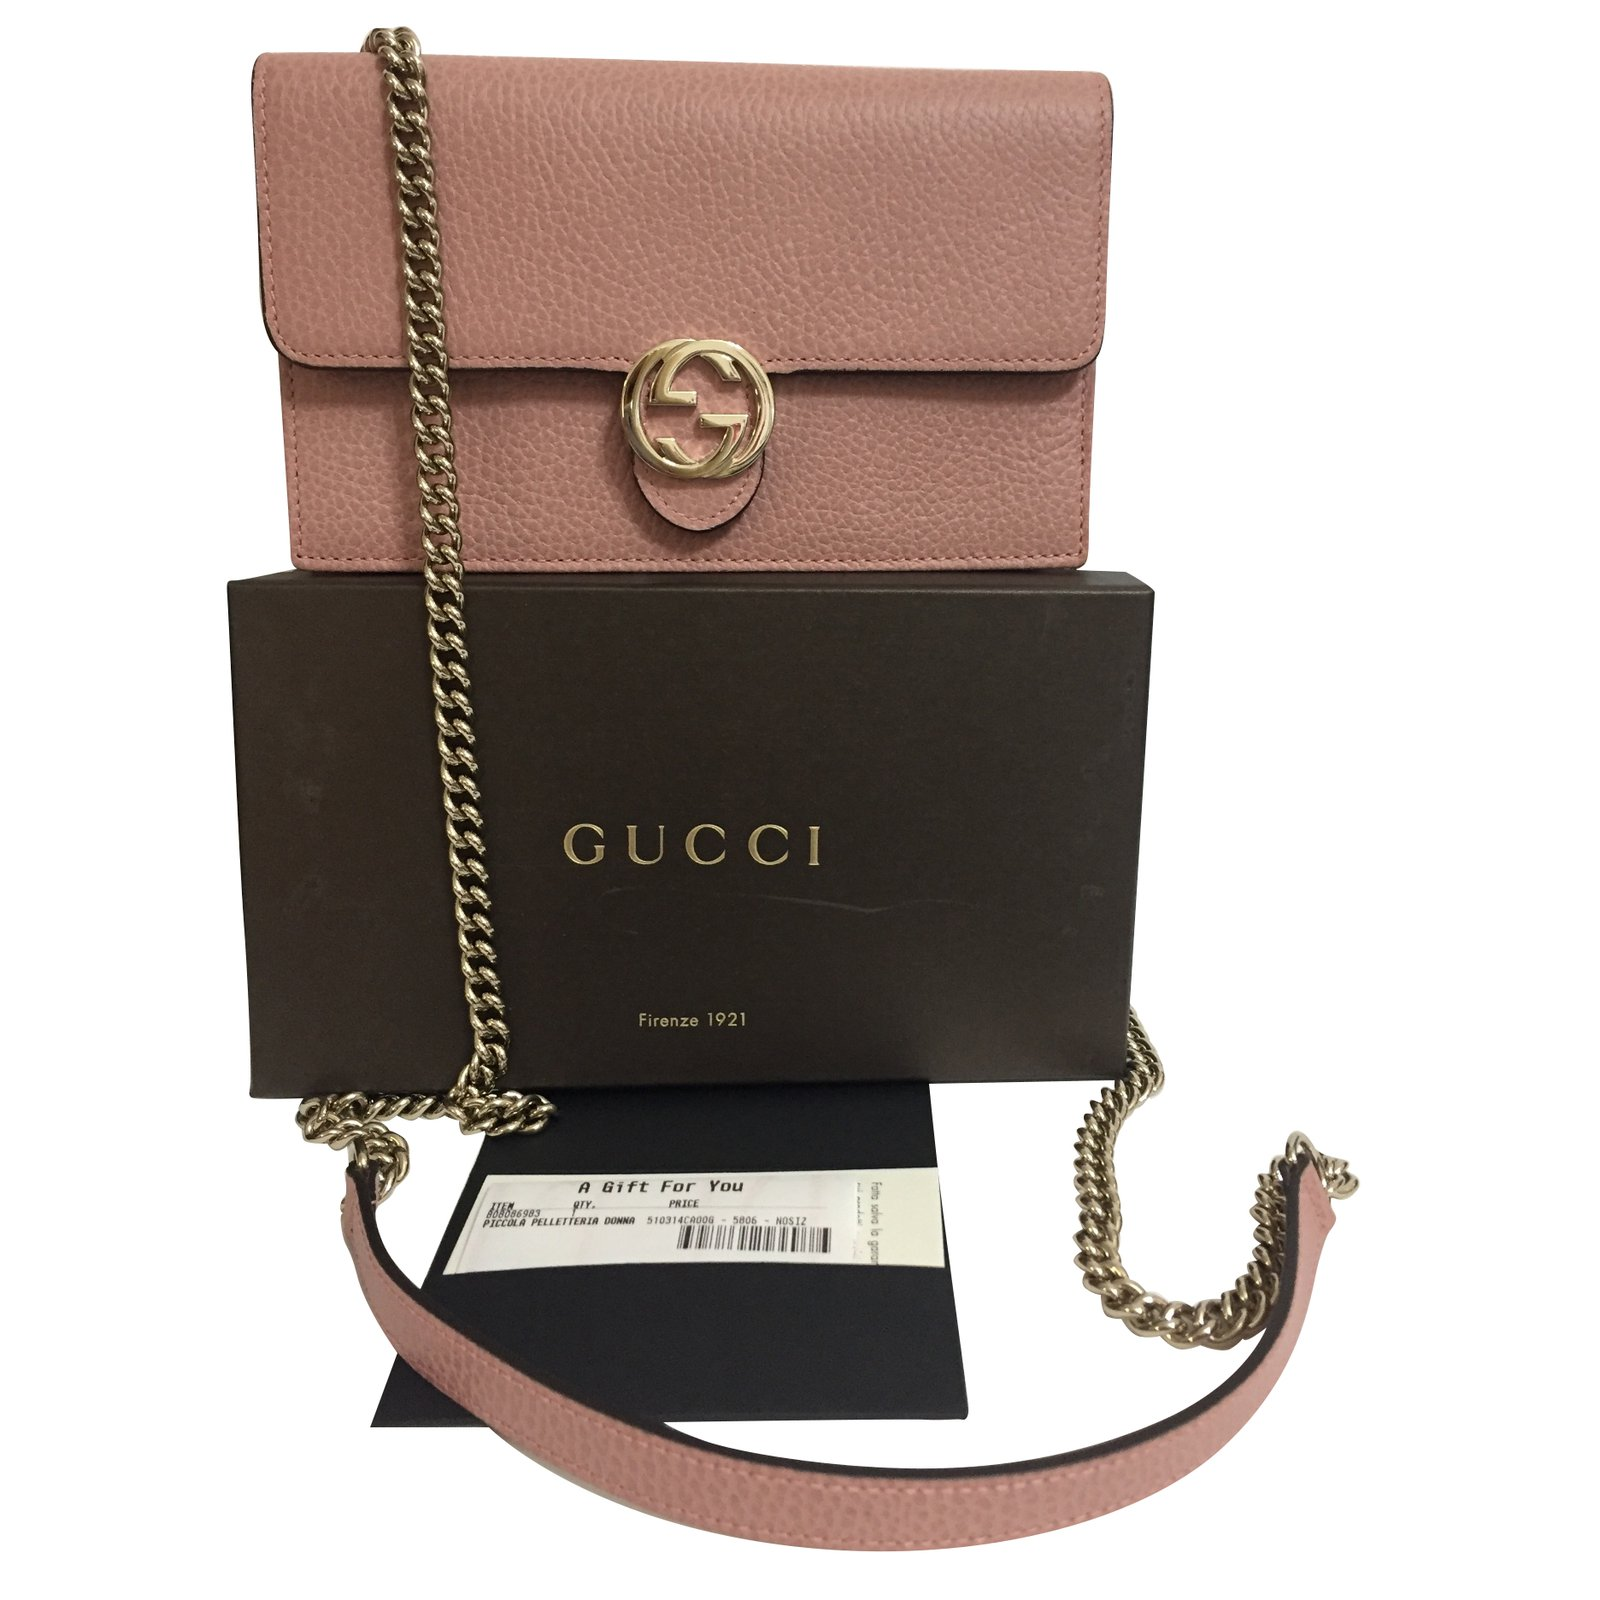 Gucci Wallet On Chain Wallets Leather Pink Ref 67002 - Joli